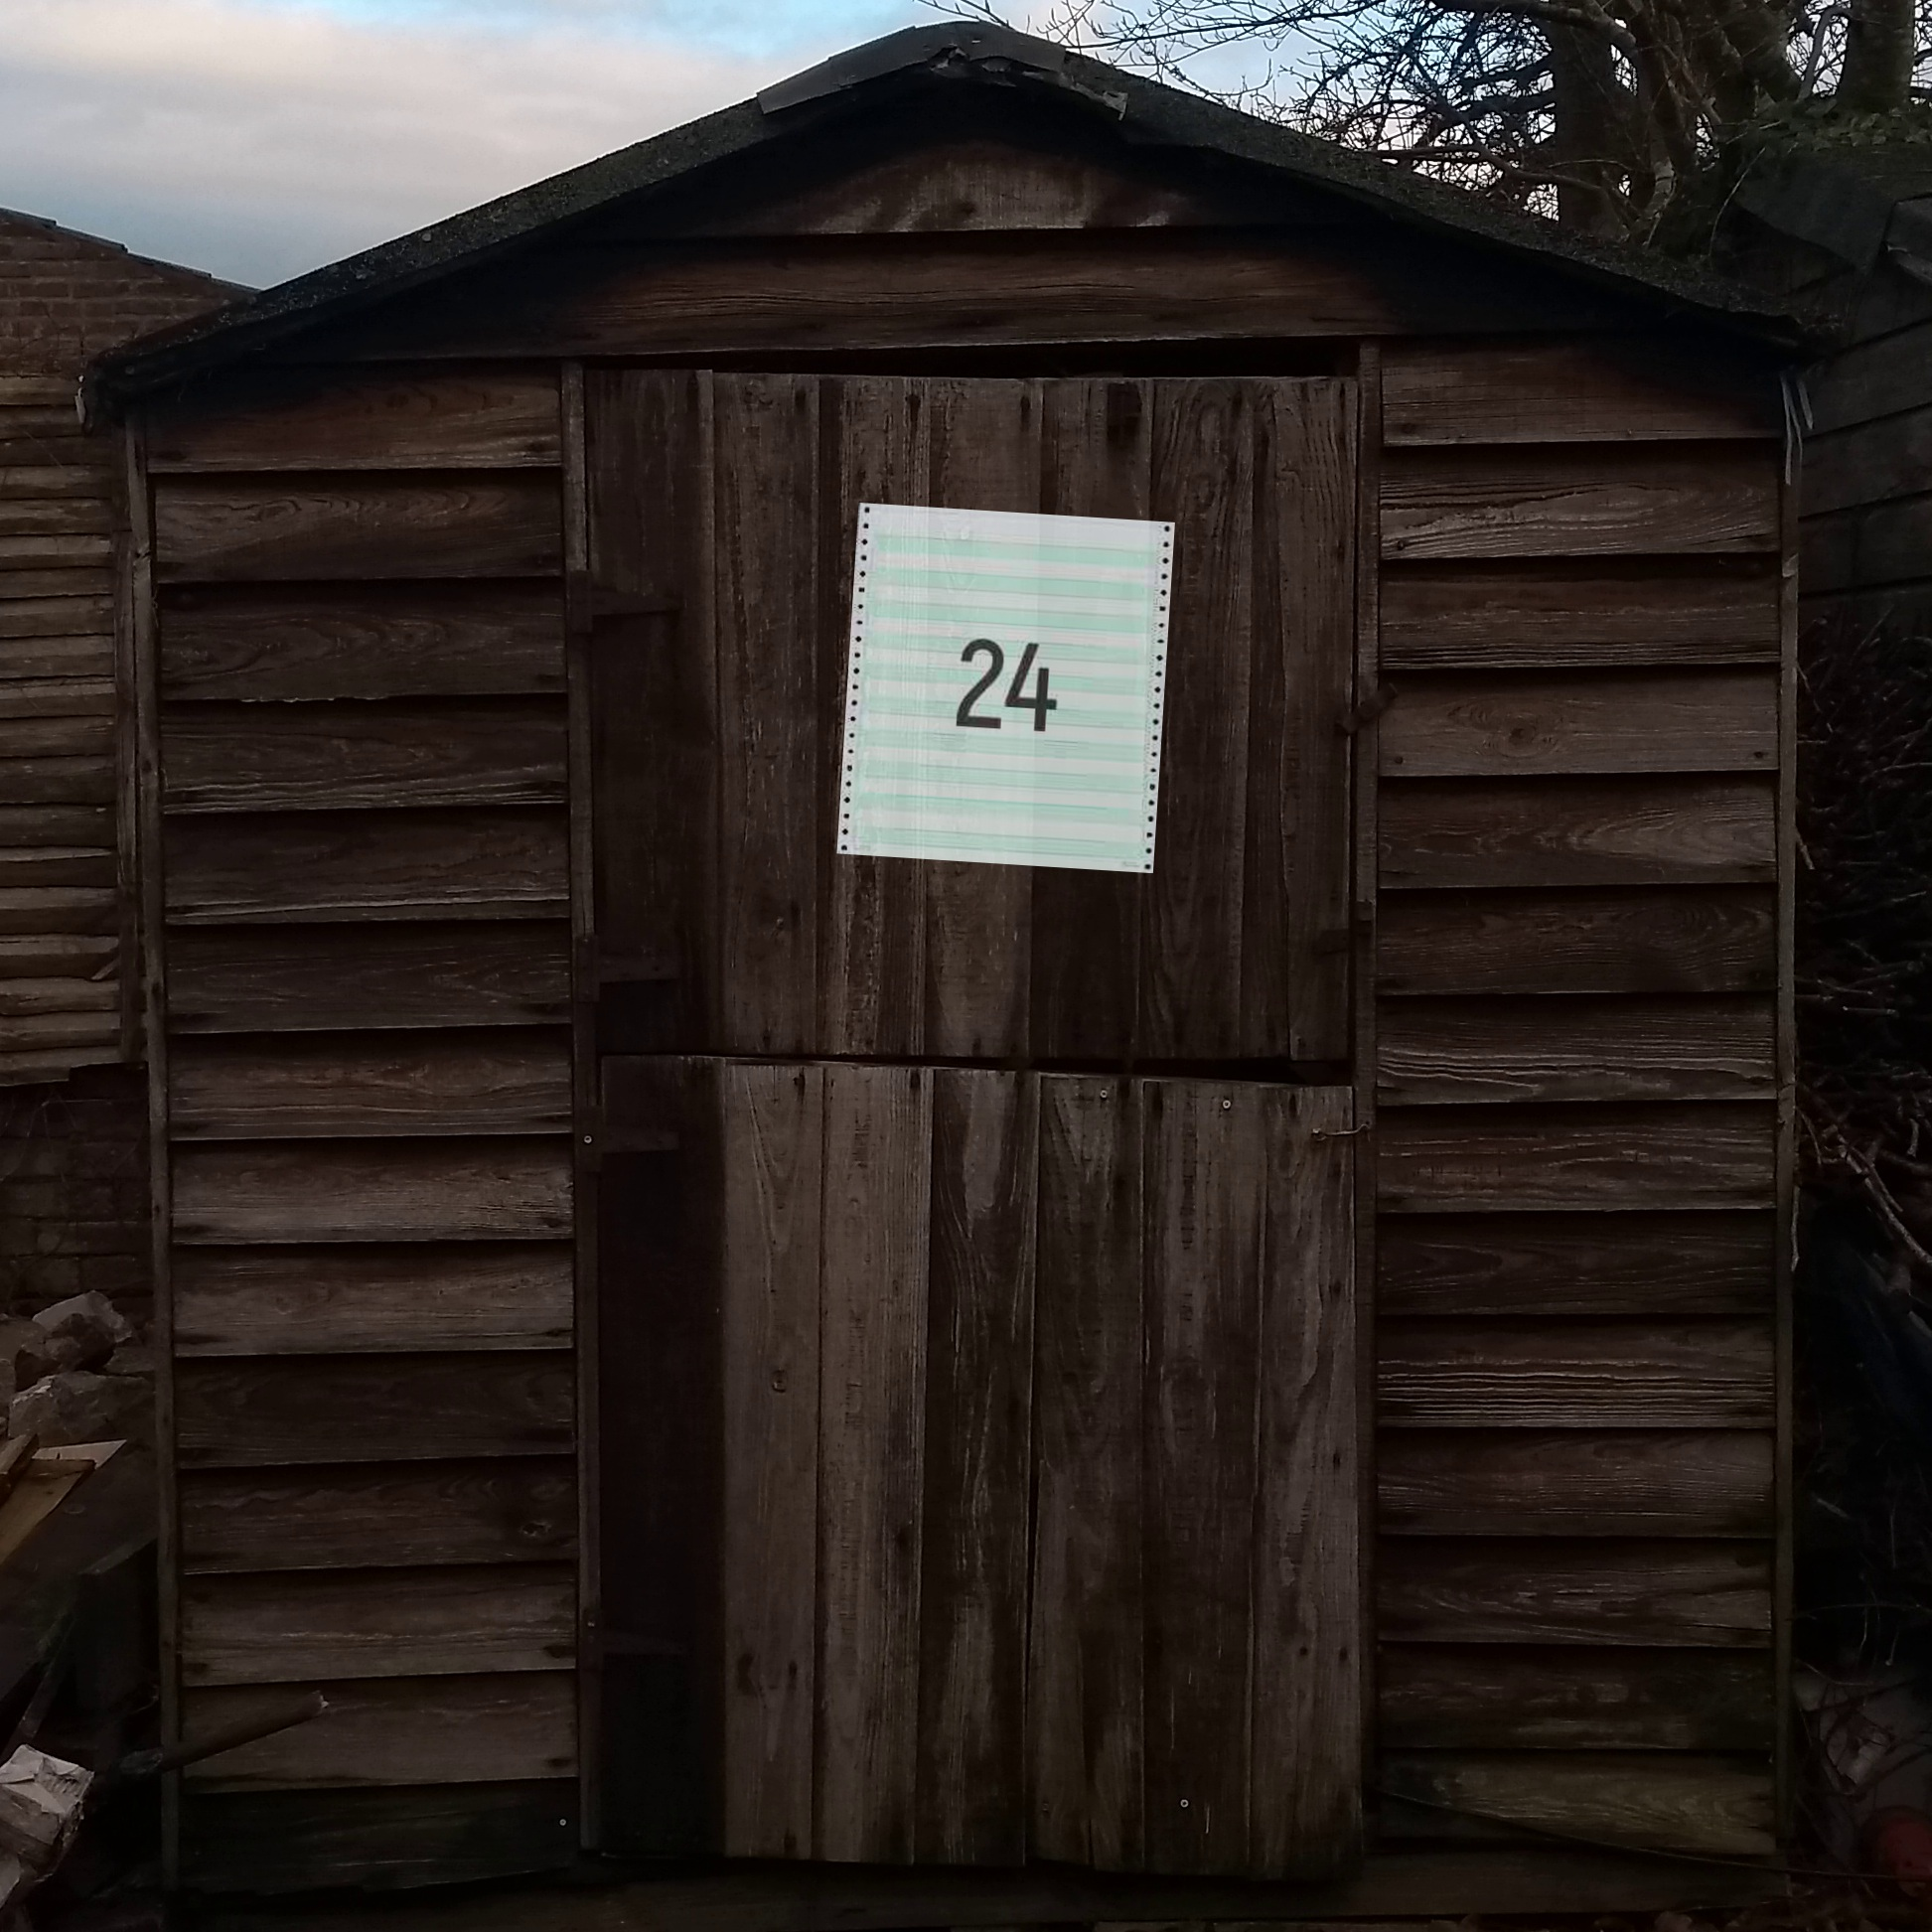 Door 24 - The Cosmic Shed Advent Calendar